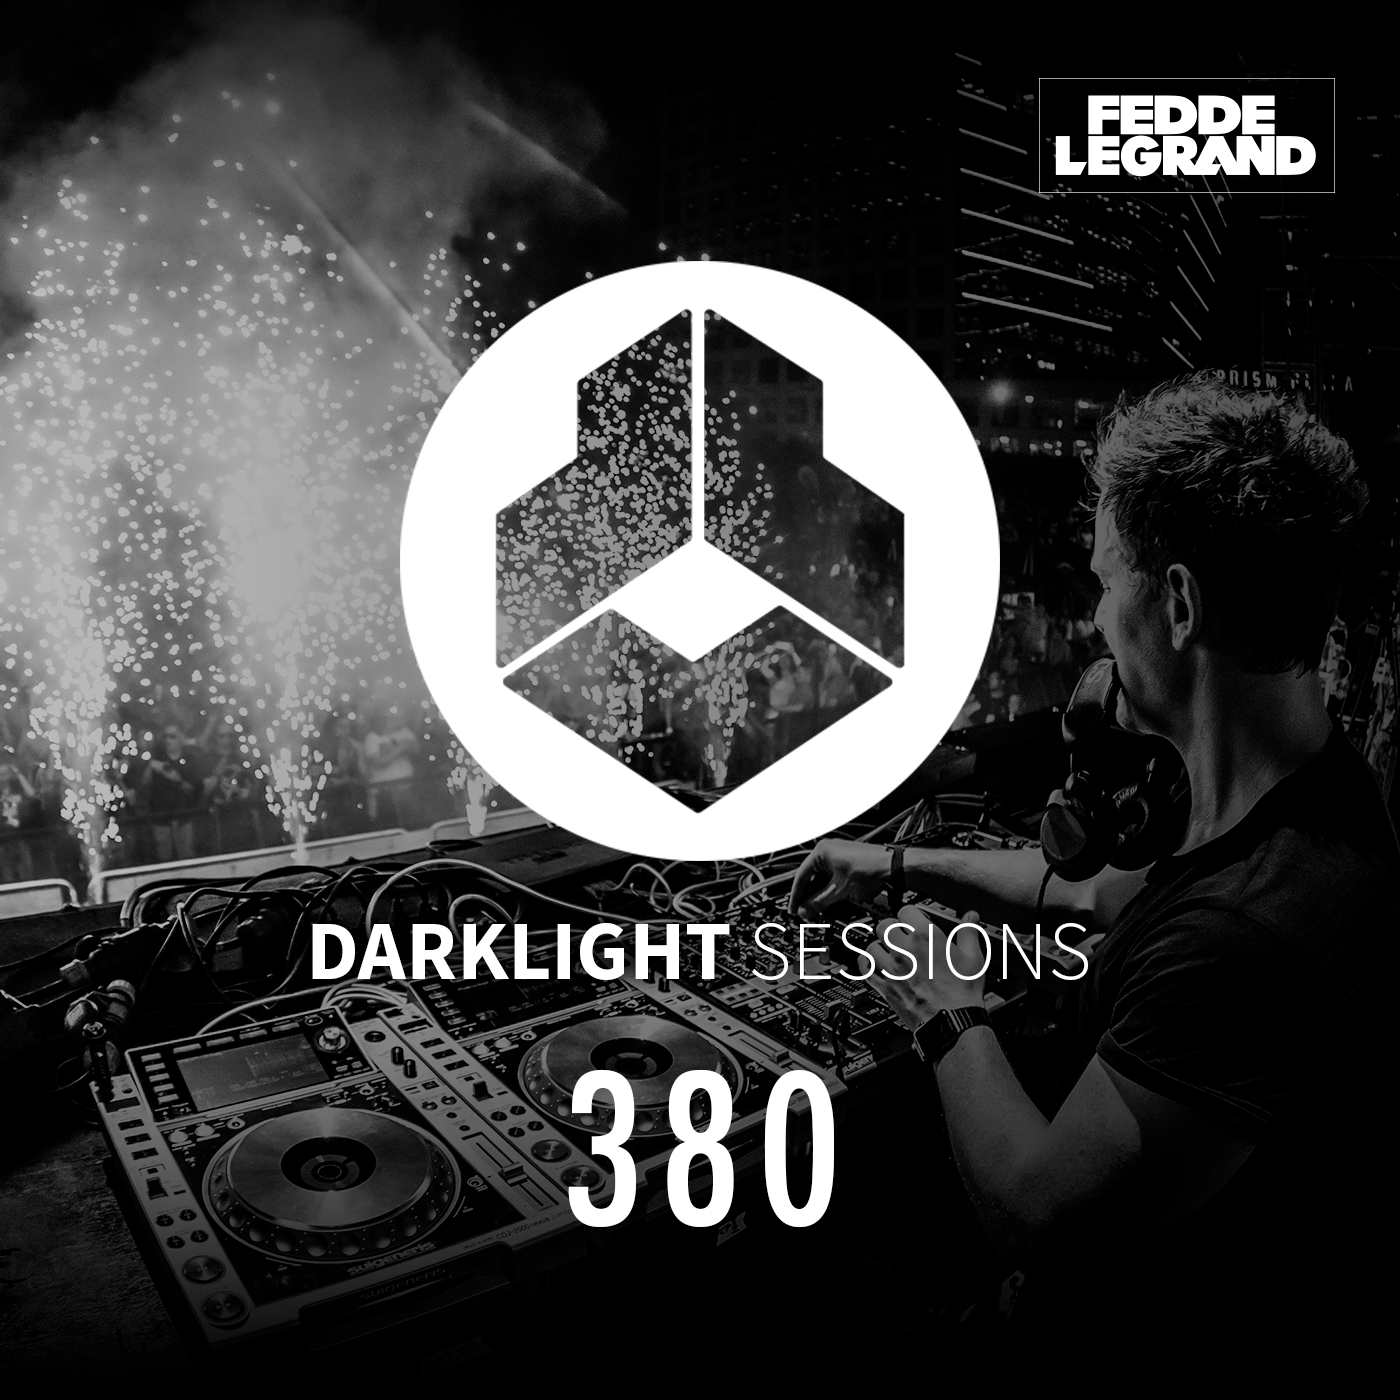 Darklight Sessions 380